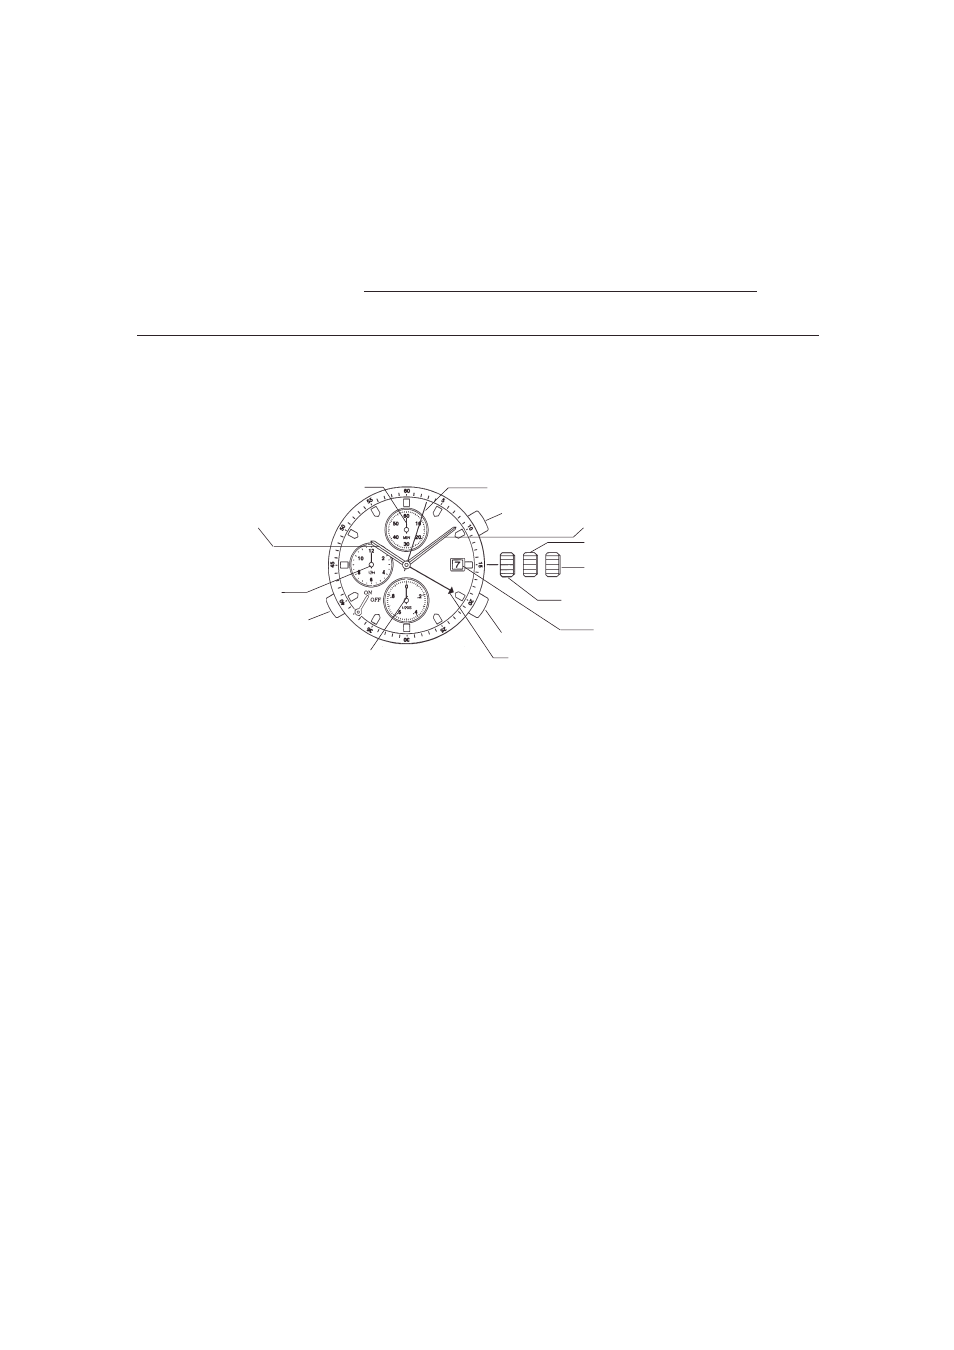 FESTINA 0S80 User Manual | 18 pages | Also for: F16095, F16183, OS80,  F16095/2, F16125, F16296, 0S60